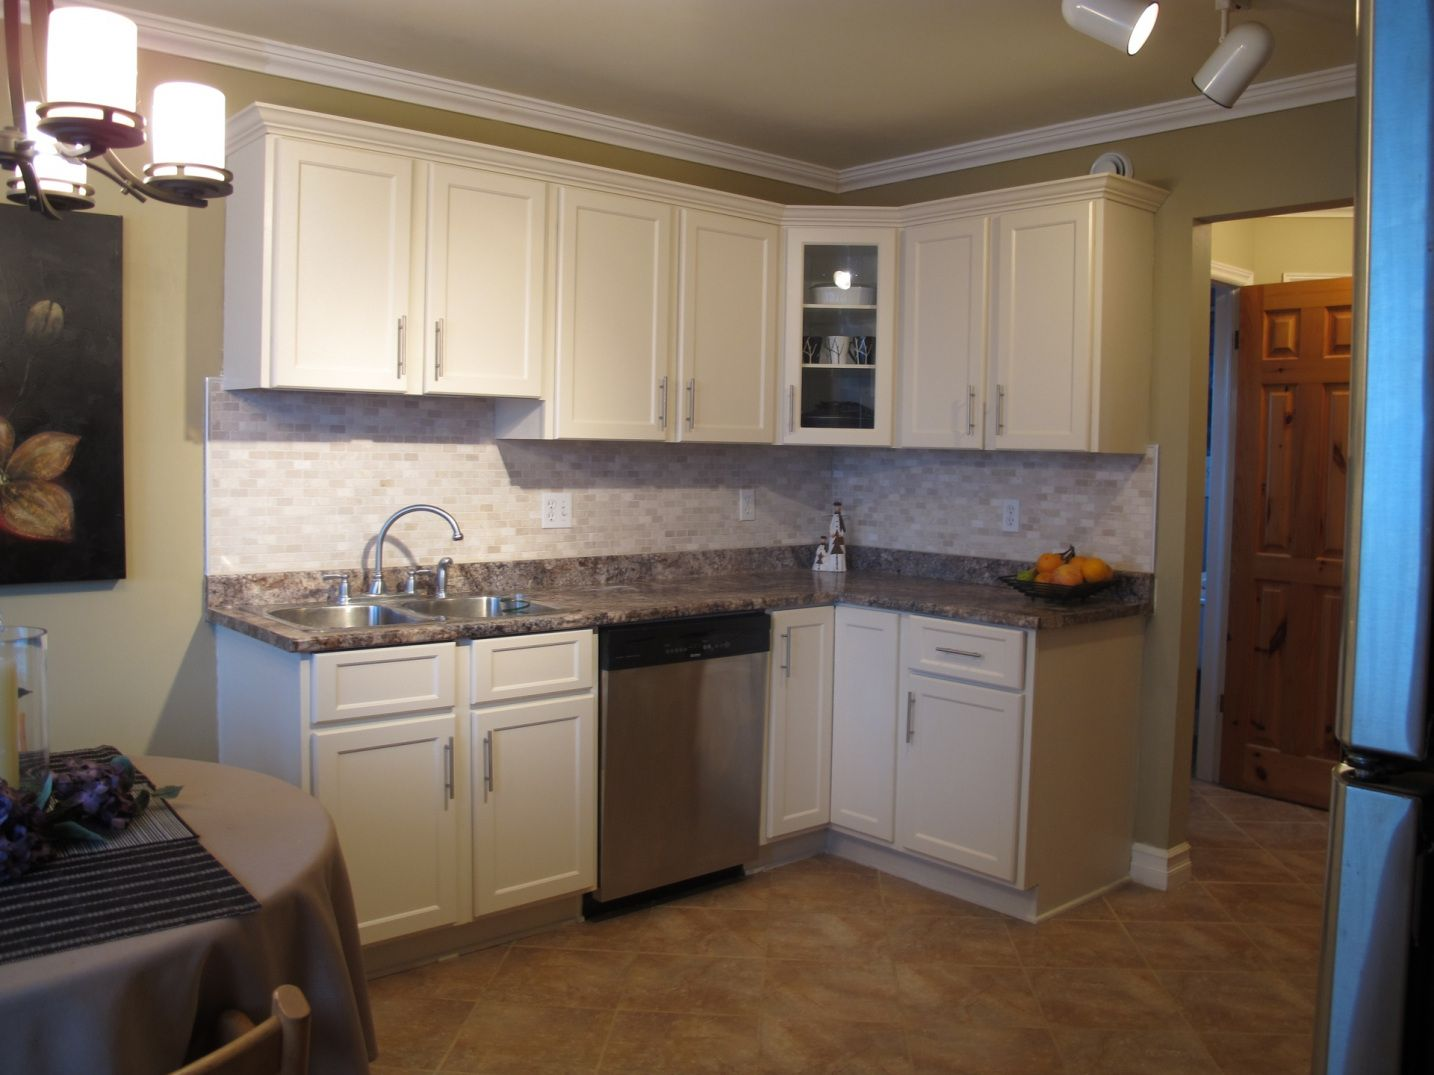 77 average cost to refinish kitchen cabinets small kitchen